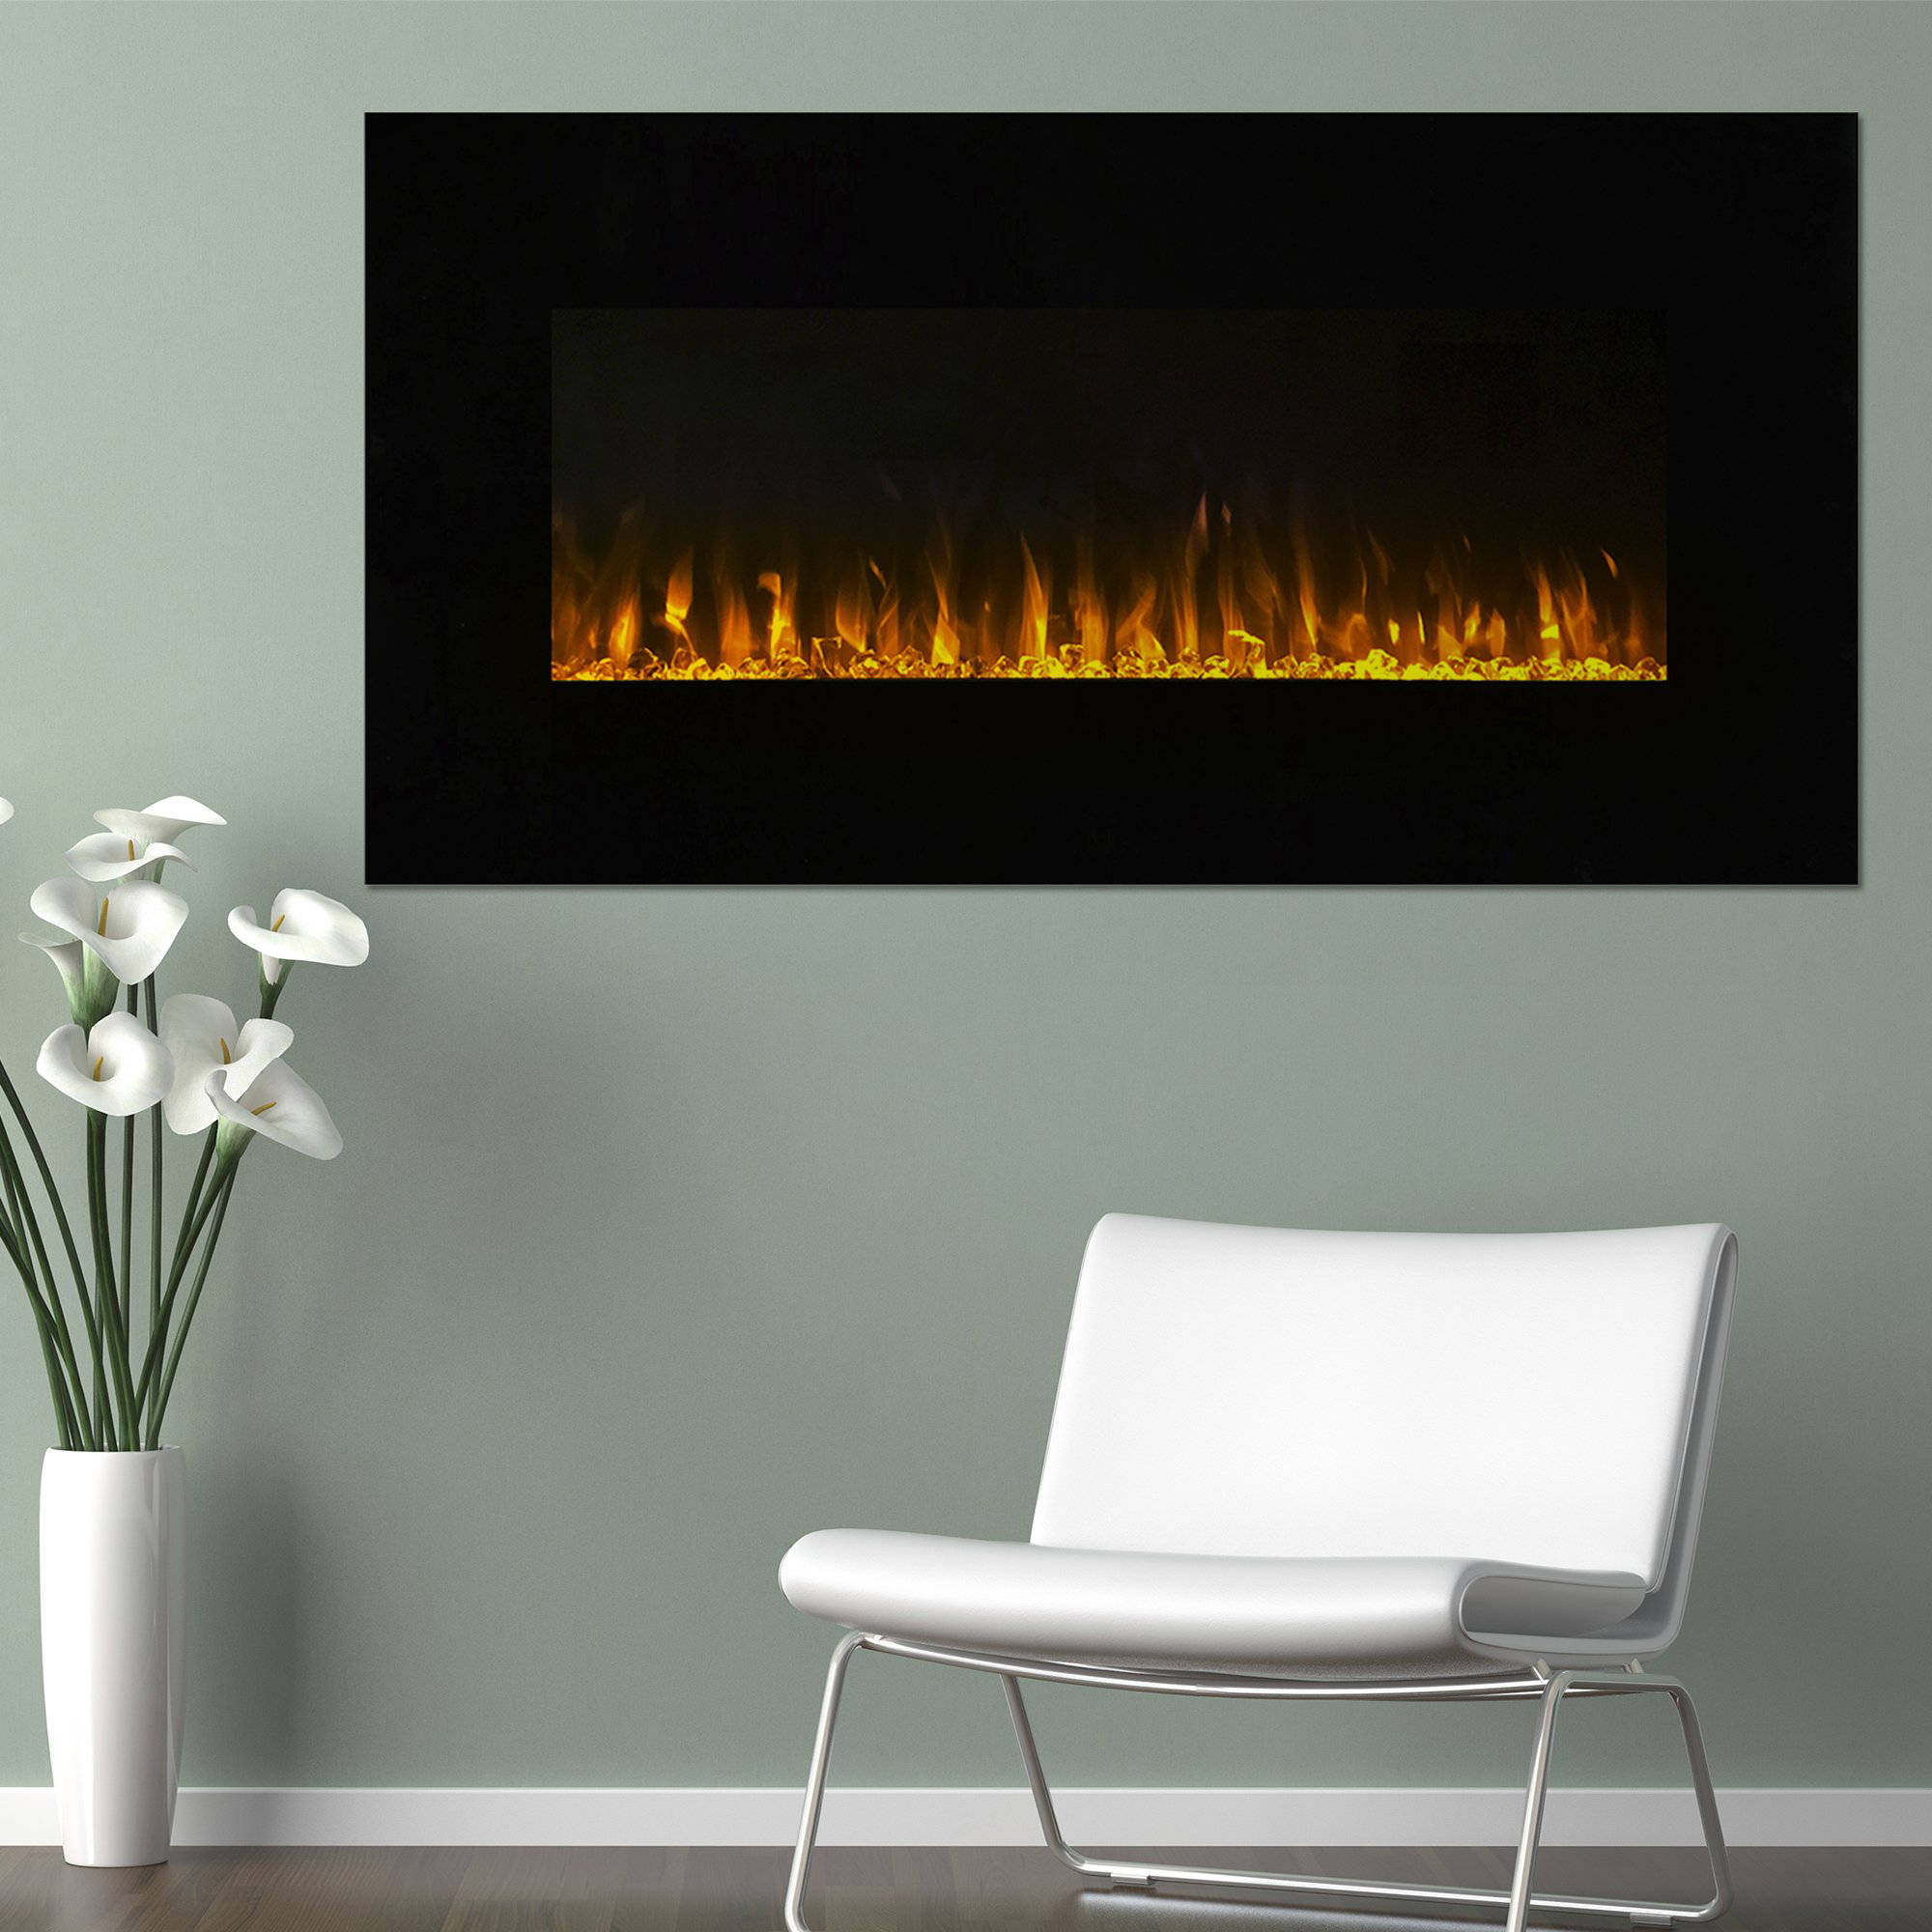 Electric Fireplace Wall Mounted  LED Fire and Ice Flame  With Remote 36  inch by Northwest   Walmart comElectric Fireplace Wall Mounted  LED Fire and Ice Flame  With  . Electric Wall Fireplace Heaters. Home Design Ideas